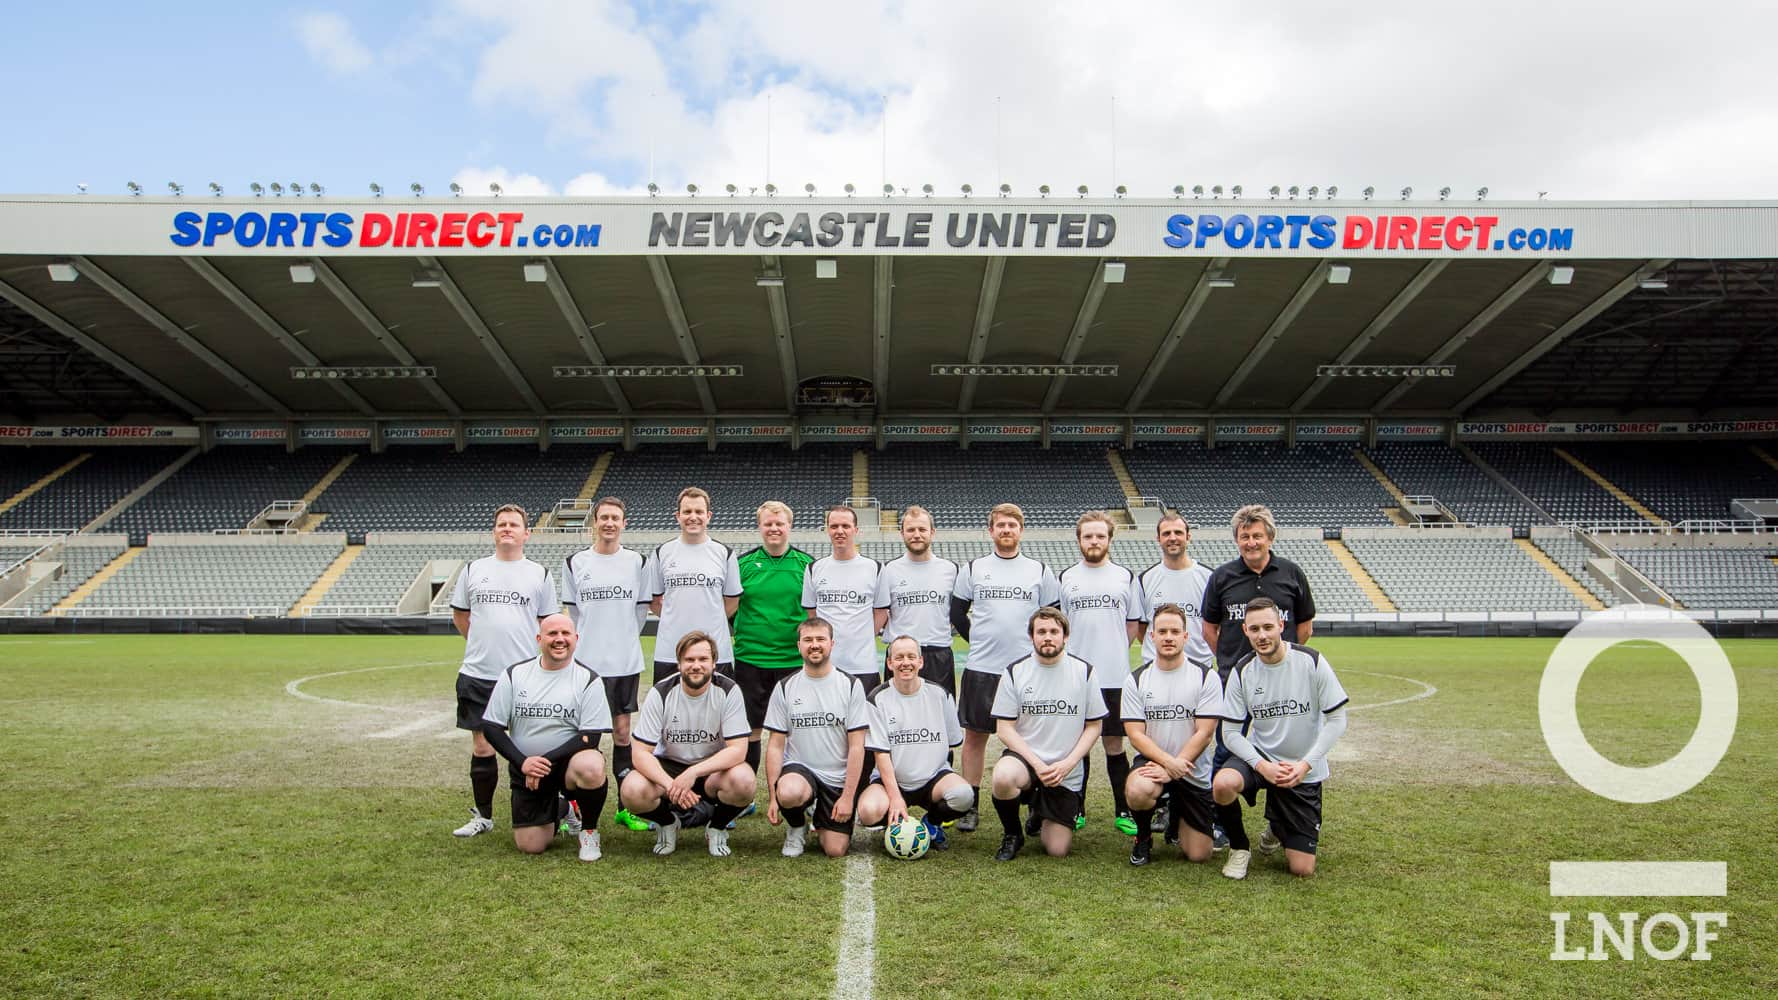 LNOF FC on the pitch at St James'